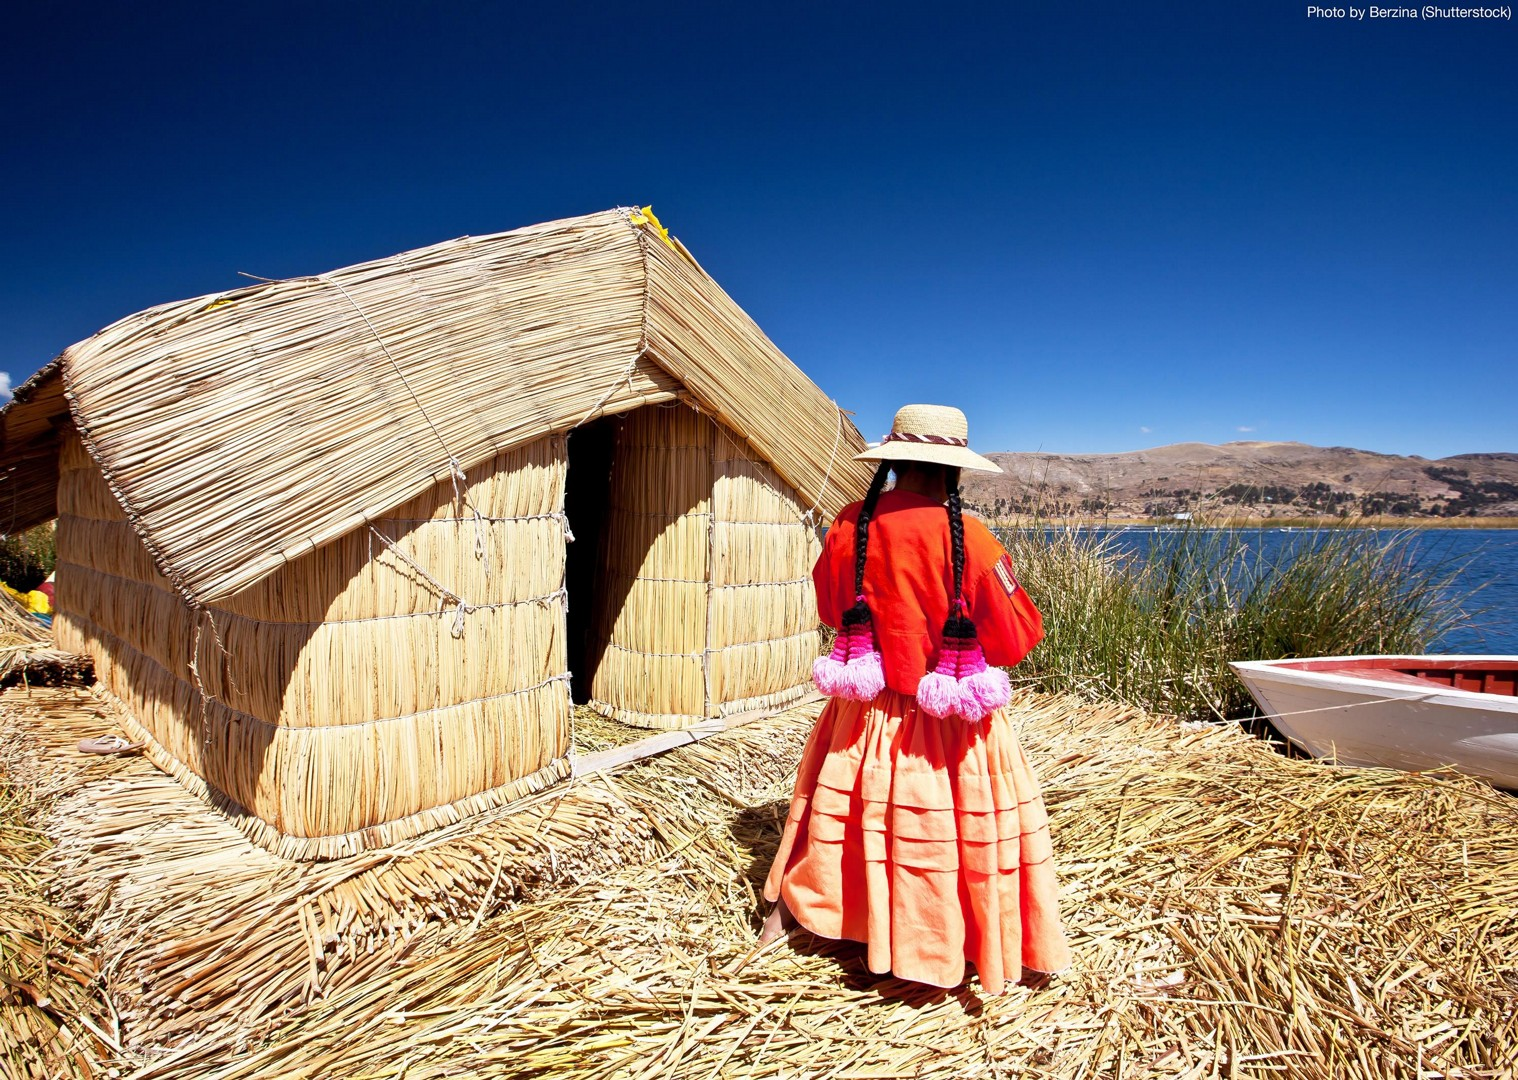 uros-floating-islands-guided-mountain-bike-holiday-in-peru.jpg - Peru - Andean Journey - Guided Mountain Bike Holiday - Mountain Biking